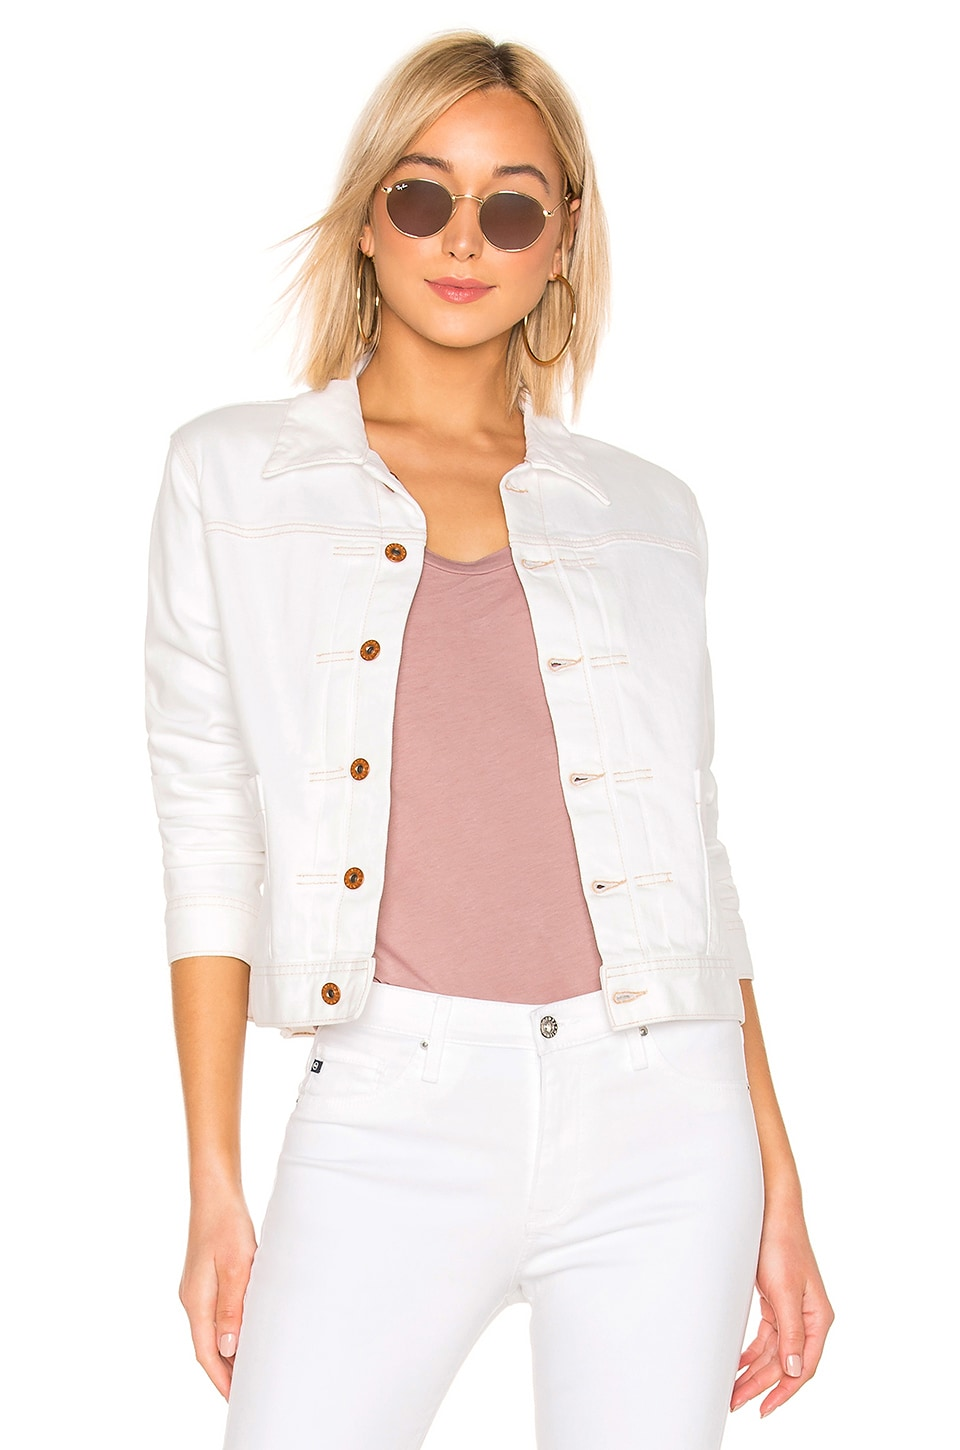 AG Adriano Goldschmied Eliette Jacket in 1 Year Bare White